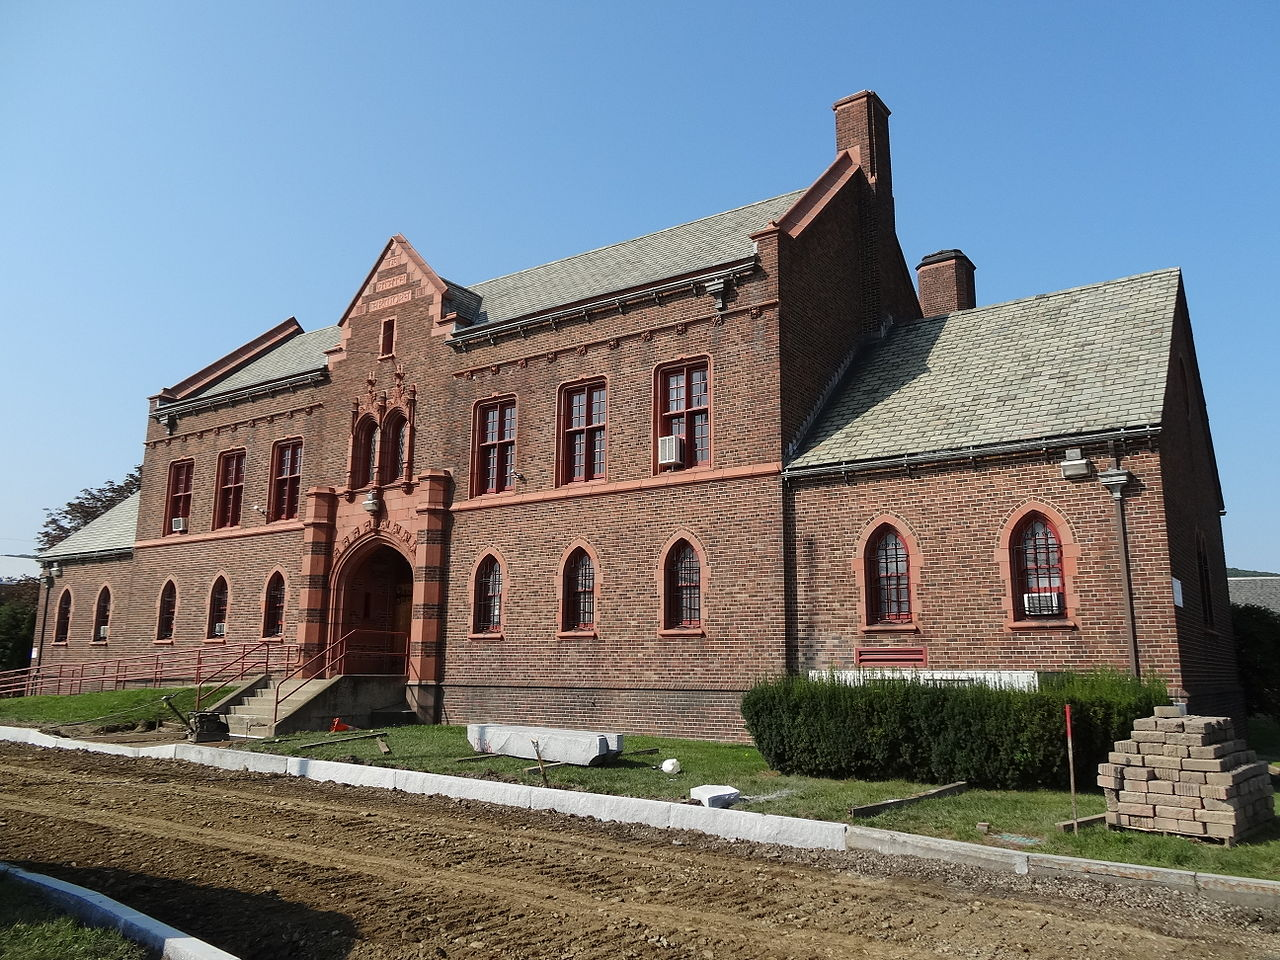 The Corning Armory was built in 1936 and is now home to the Y.M.C.A.